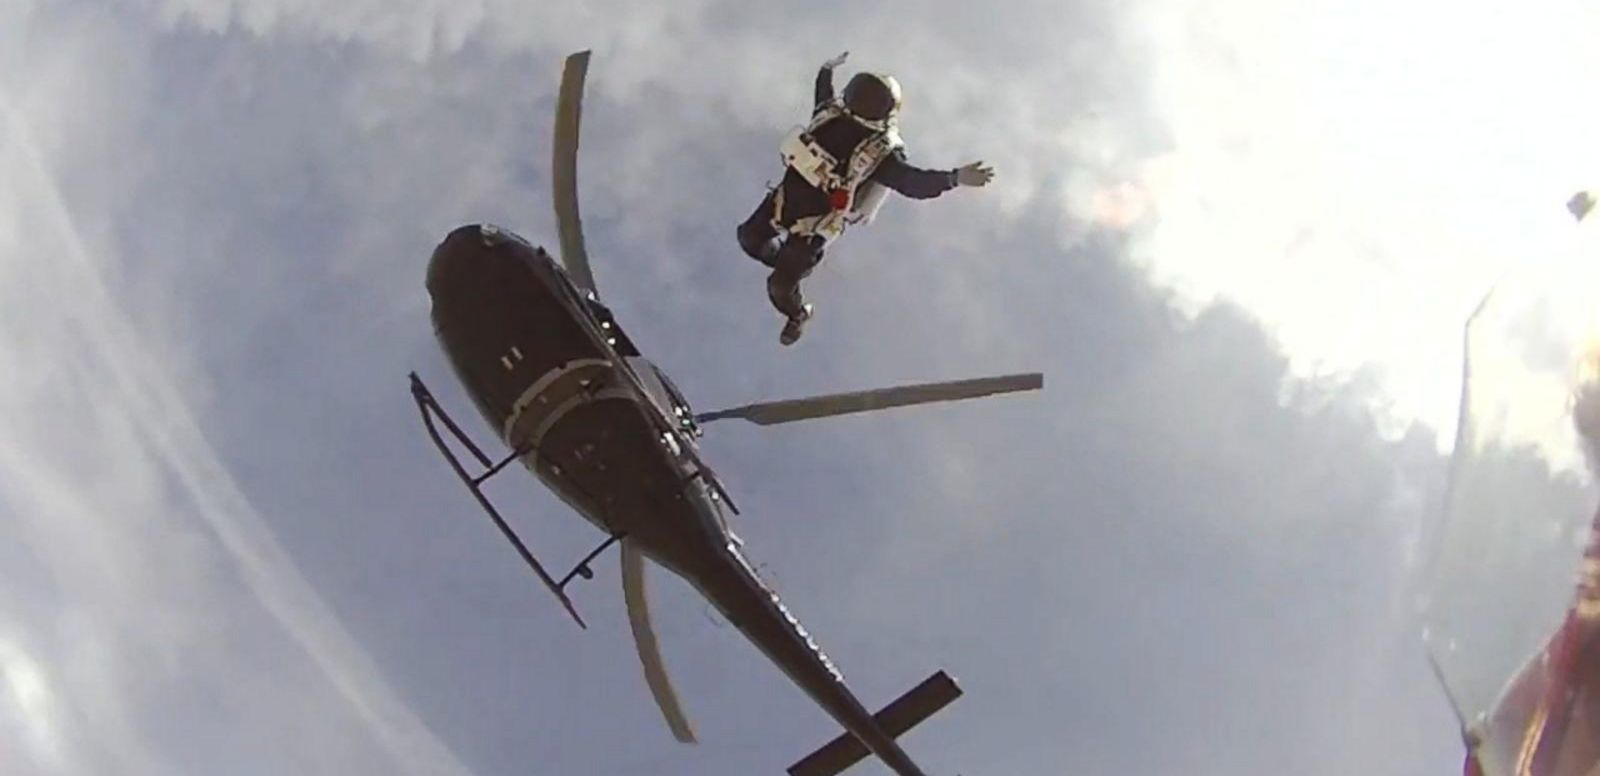 VIDEO: Skydiver Plans to Jump With No Parachute